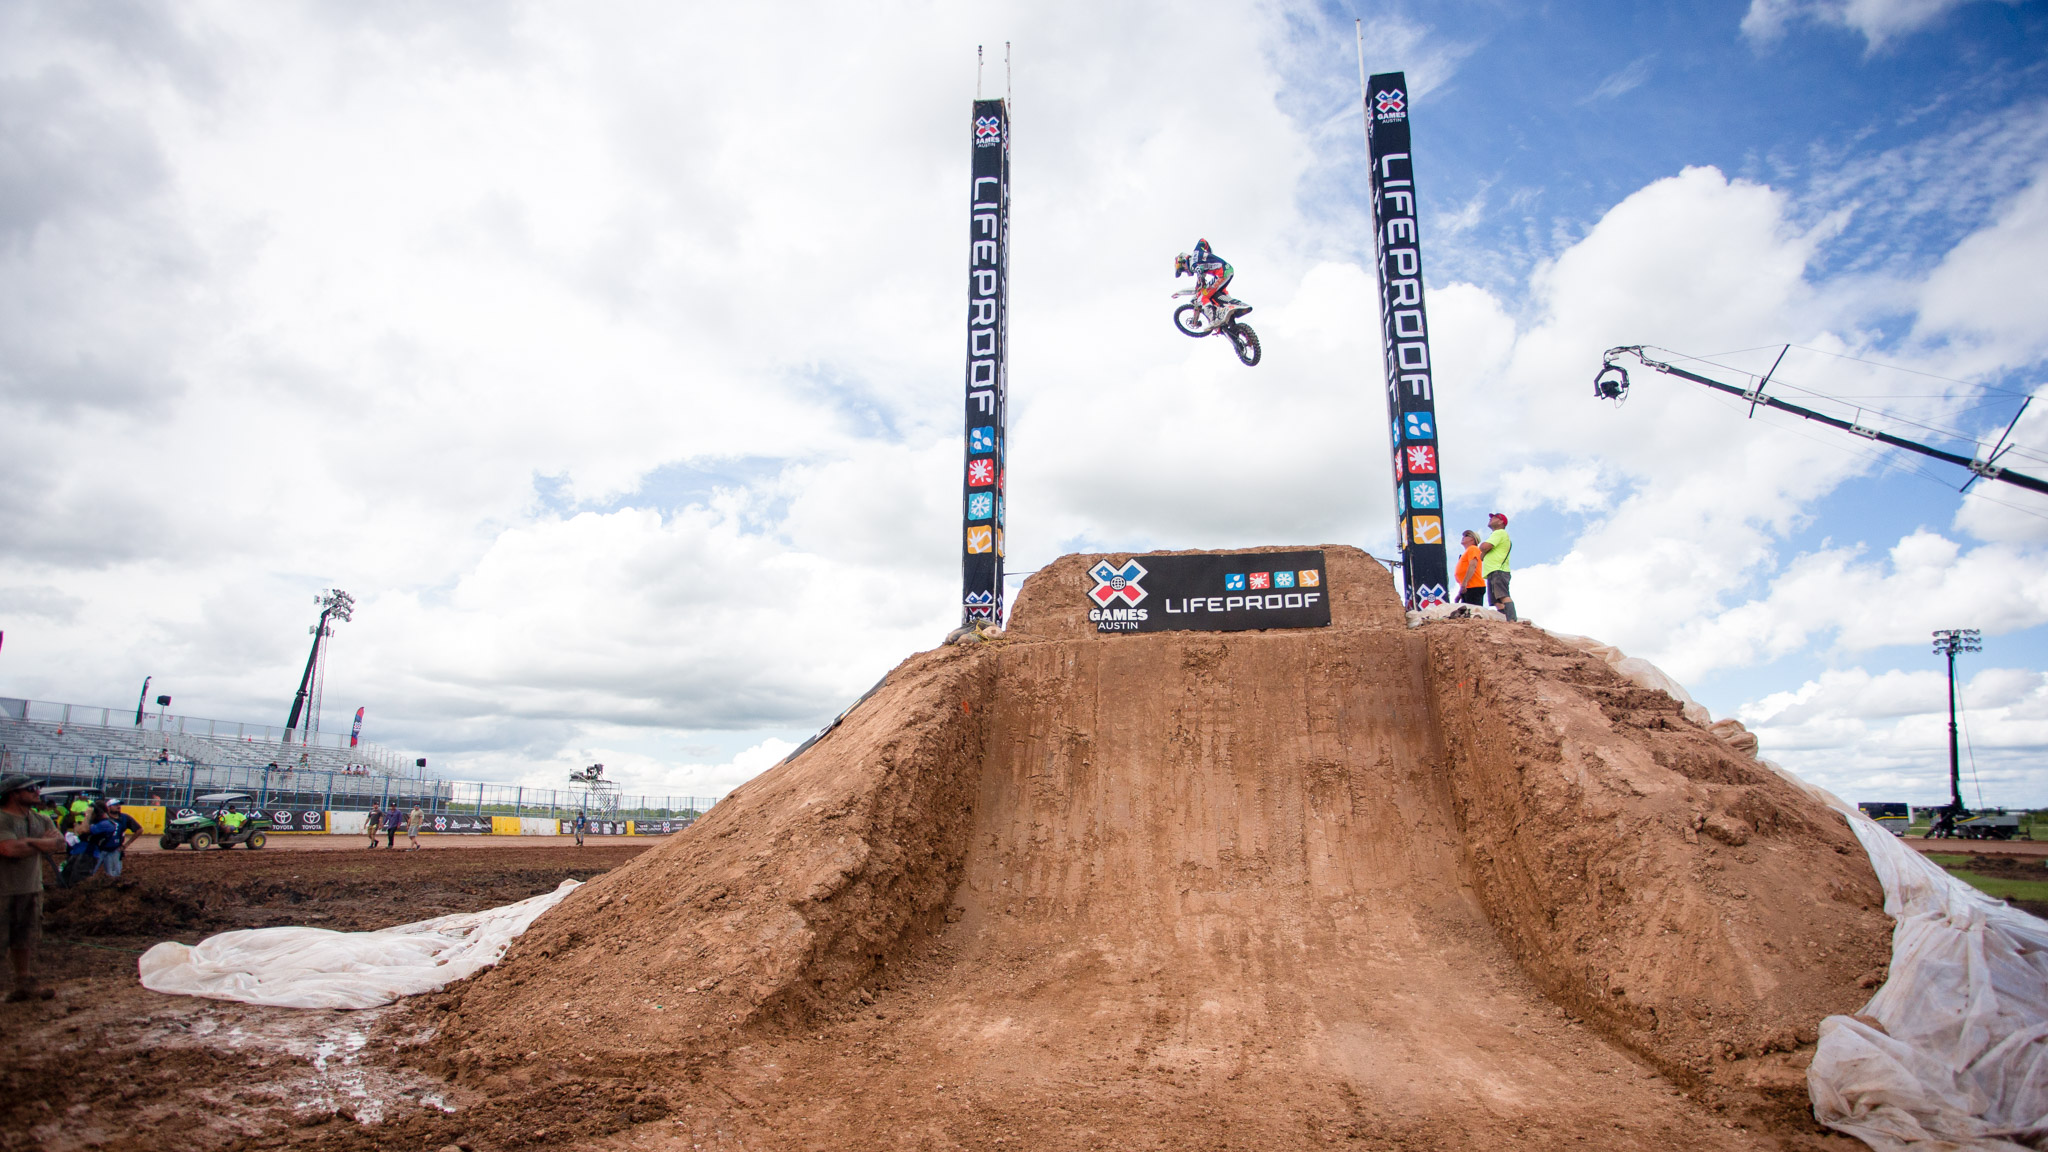 Ronnie Renner: Moto X Step Up